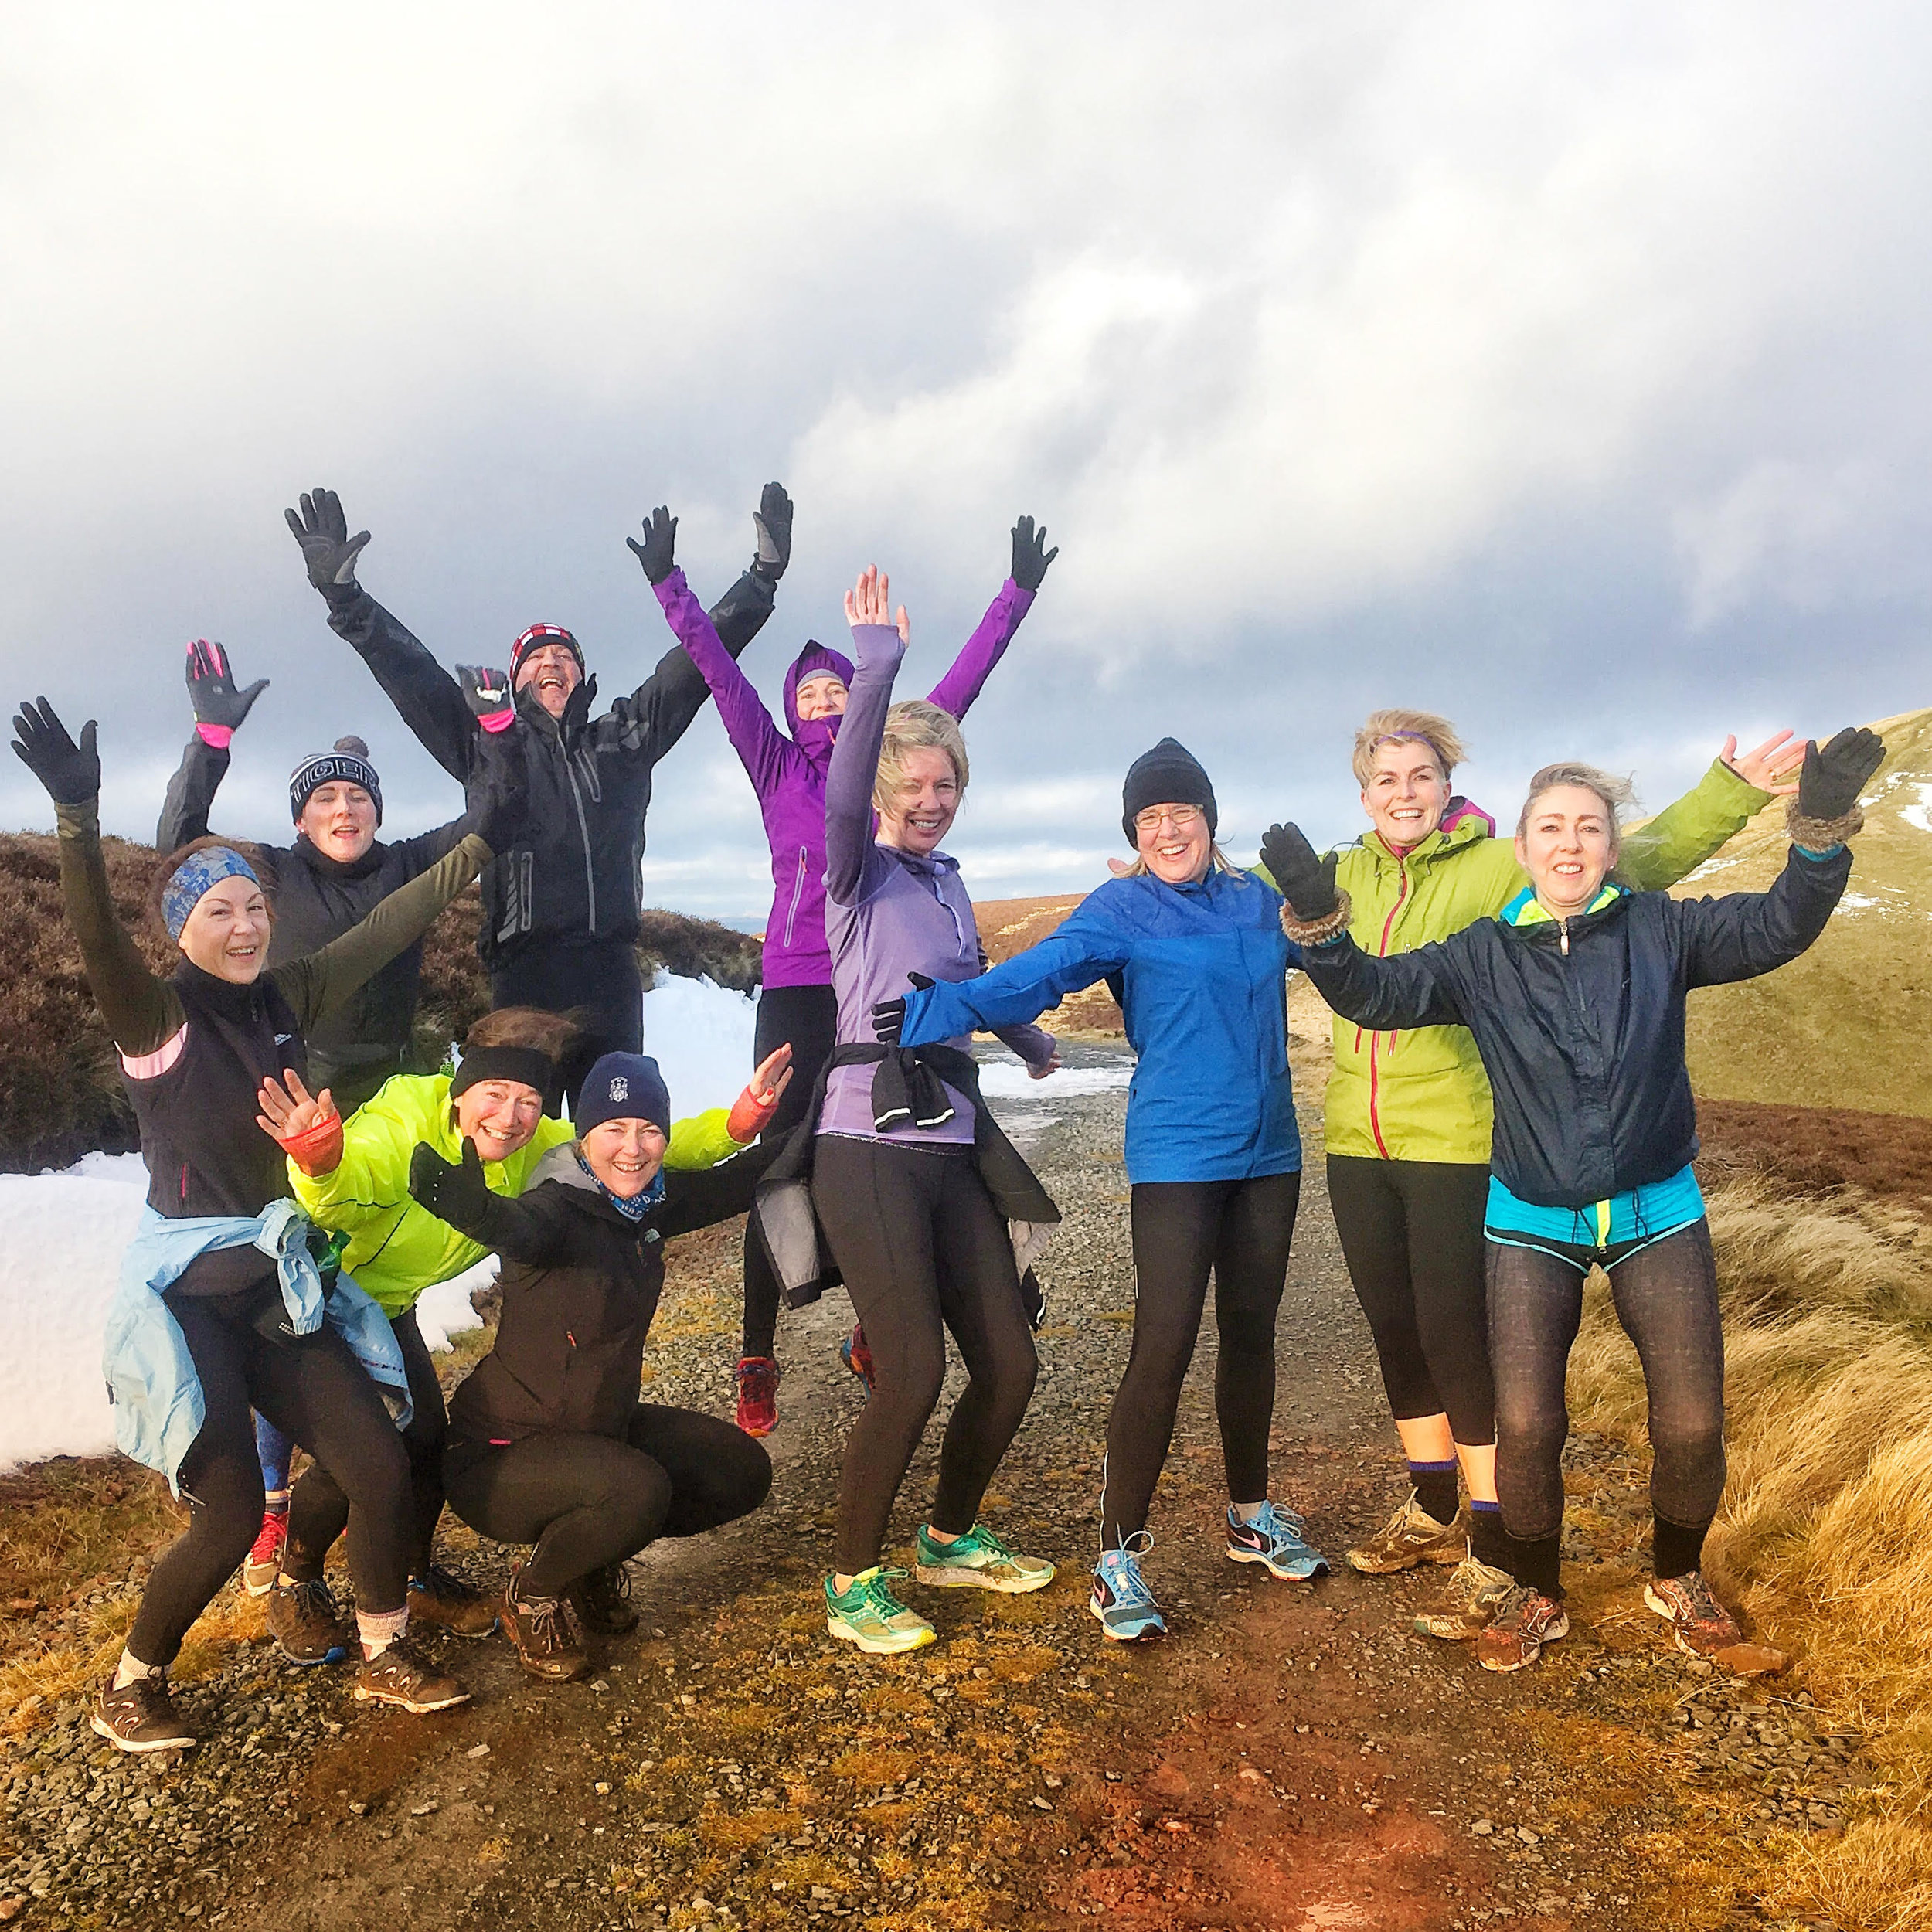 The Pentland Taster Running Tour